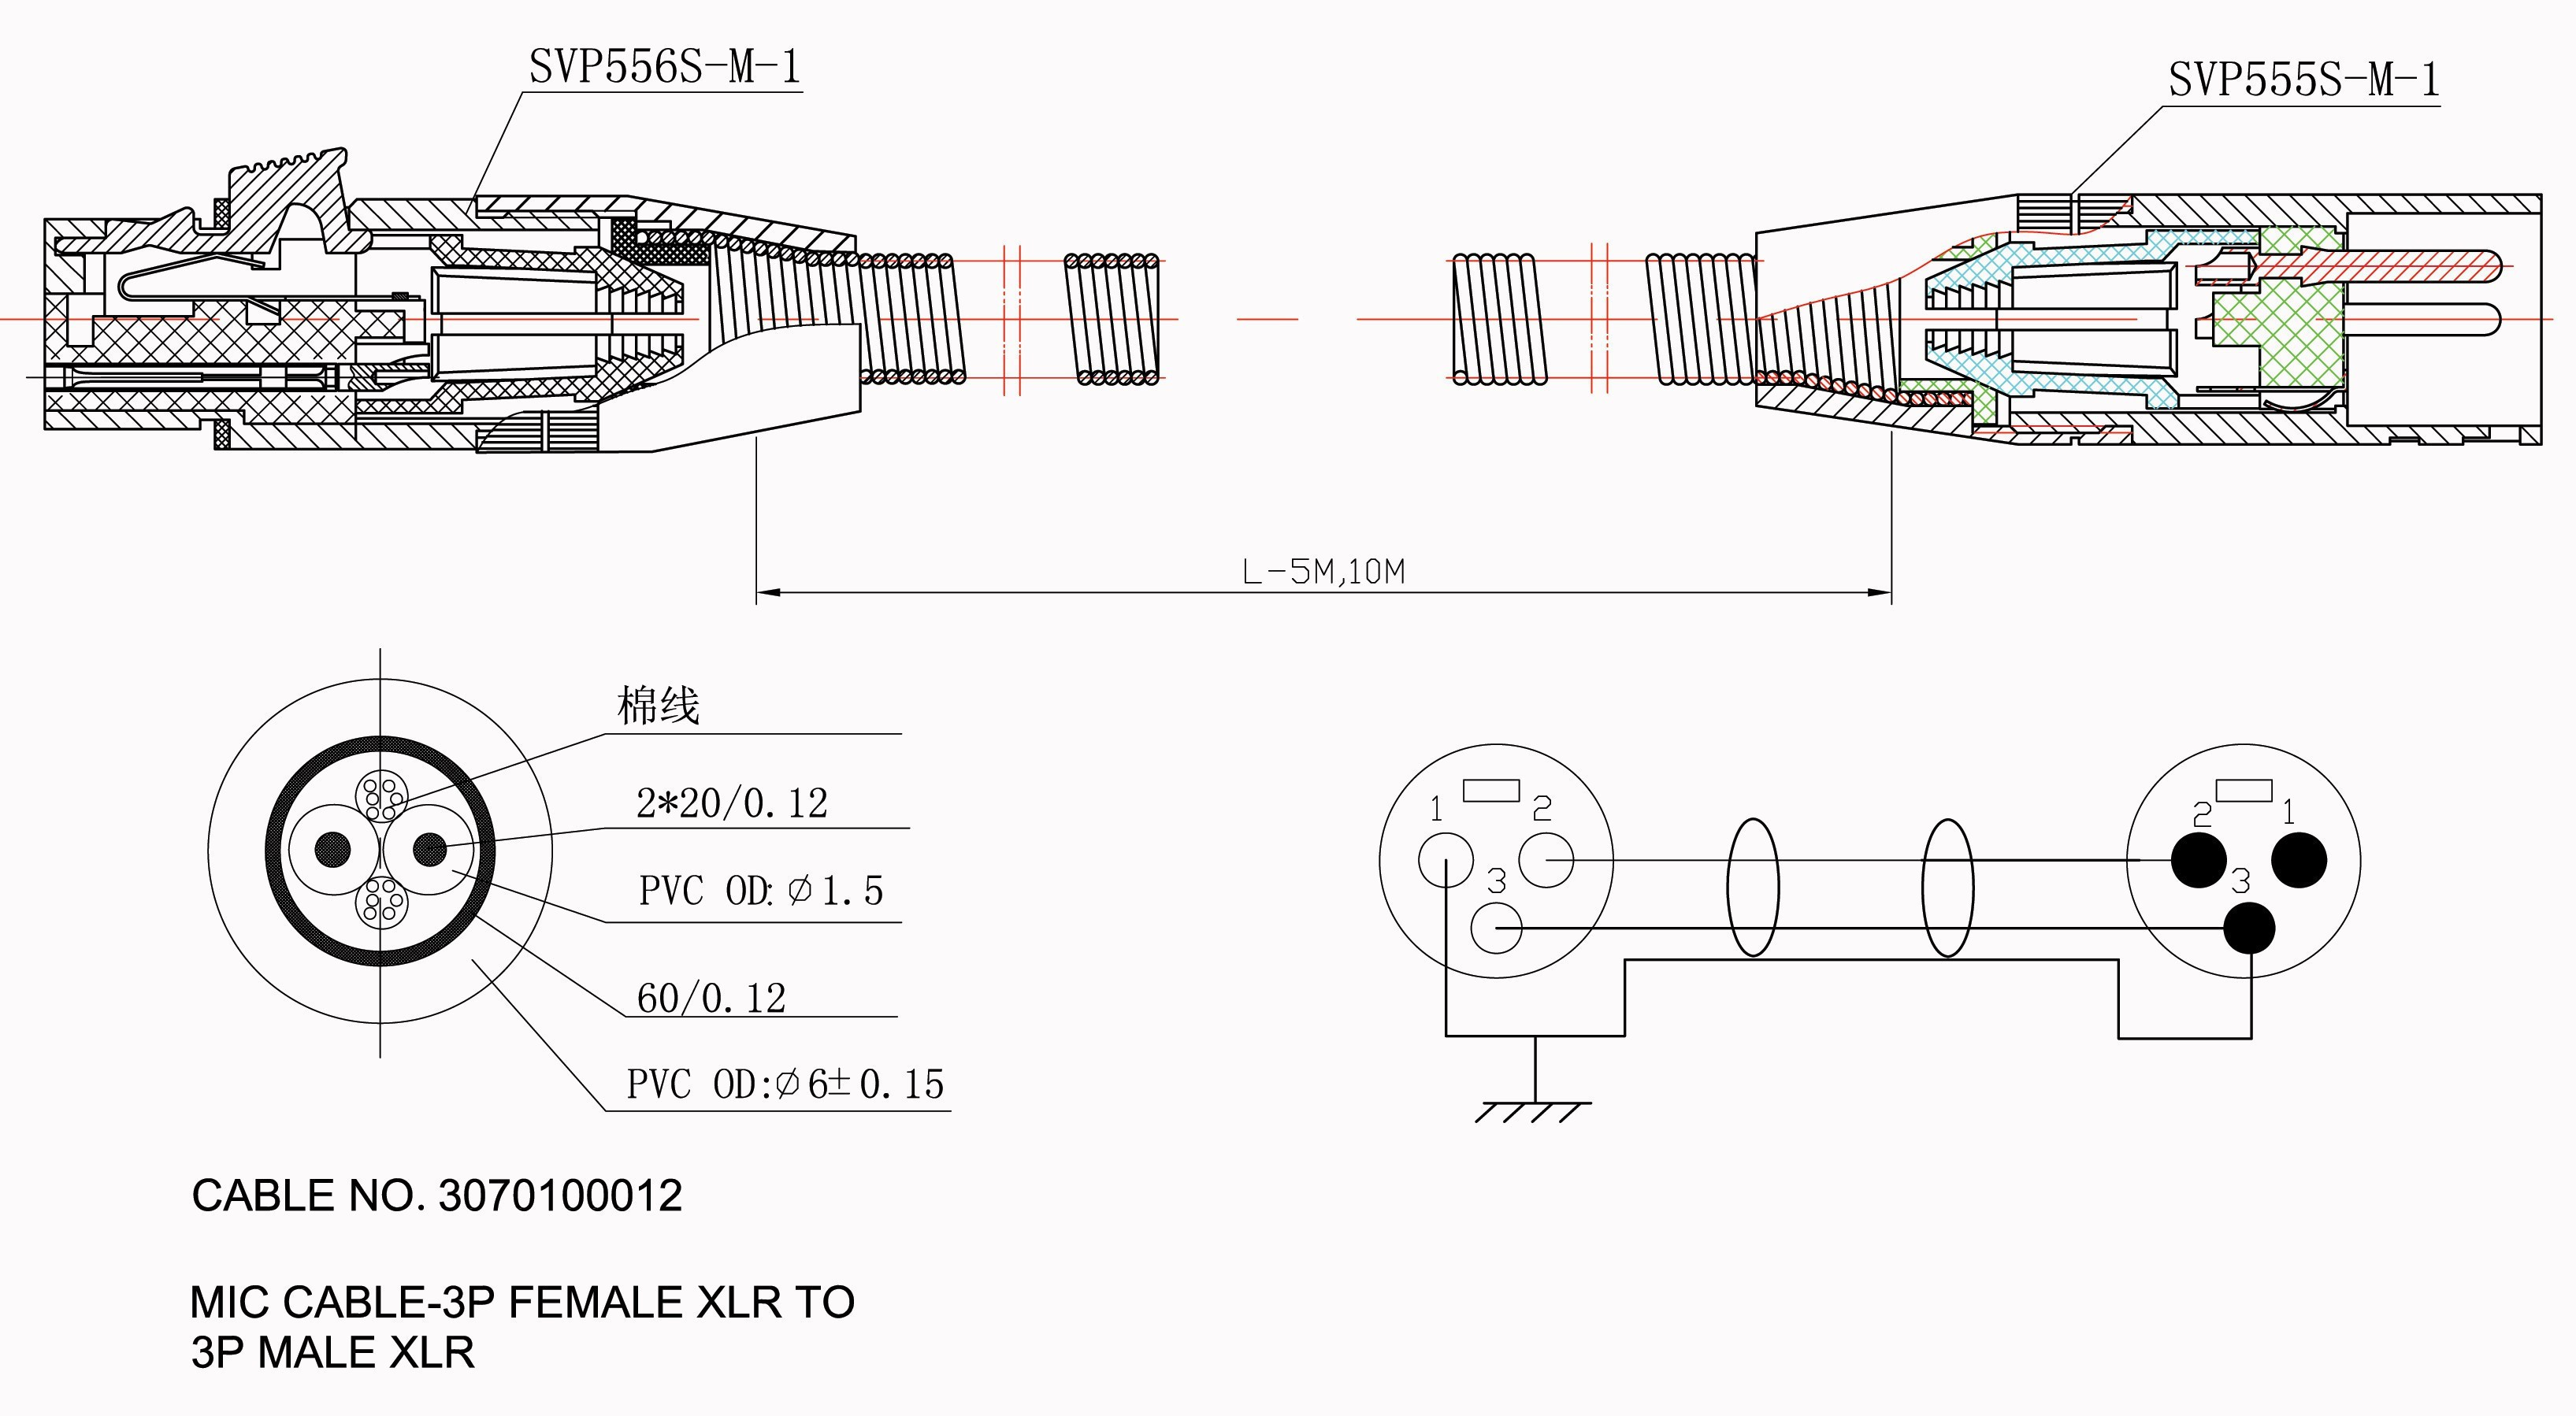 2006 Dodge Stratus Engine Diagram Wiring Diagram From 208v Another Blog About Wiring Diagram • Of 2006 Dodge Stratus Engine Diagram